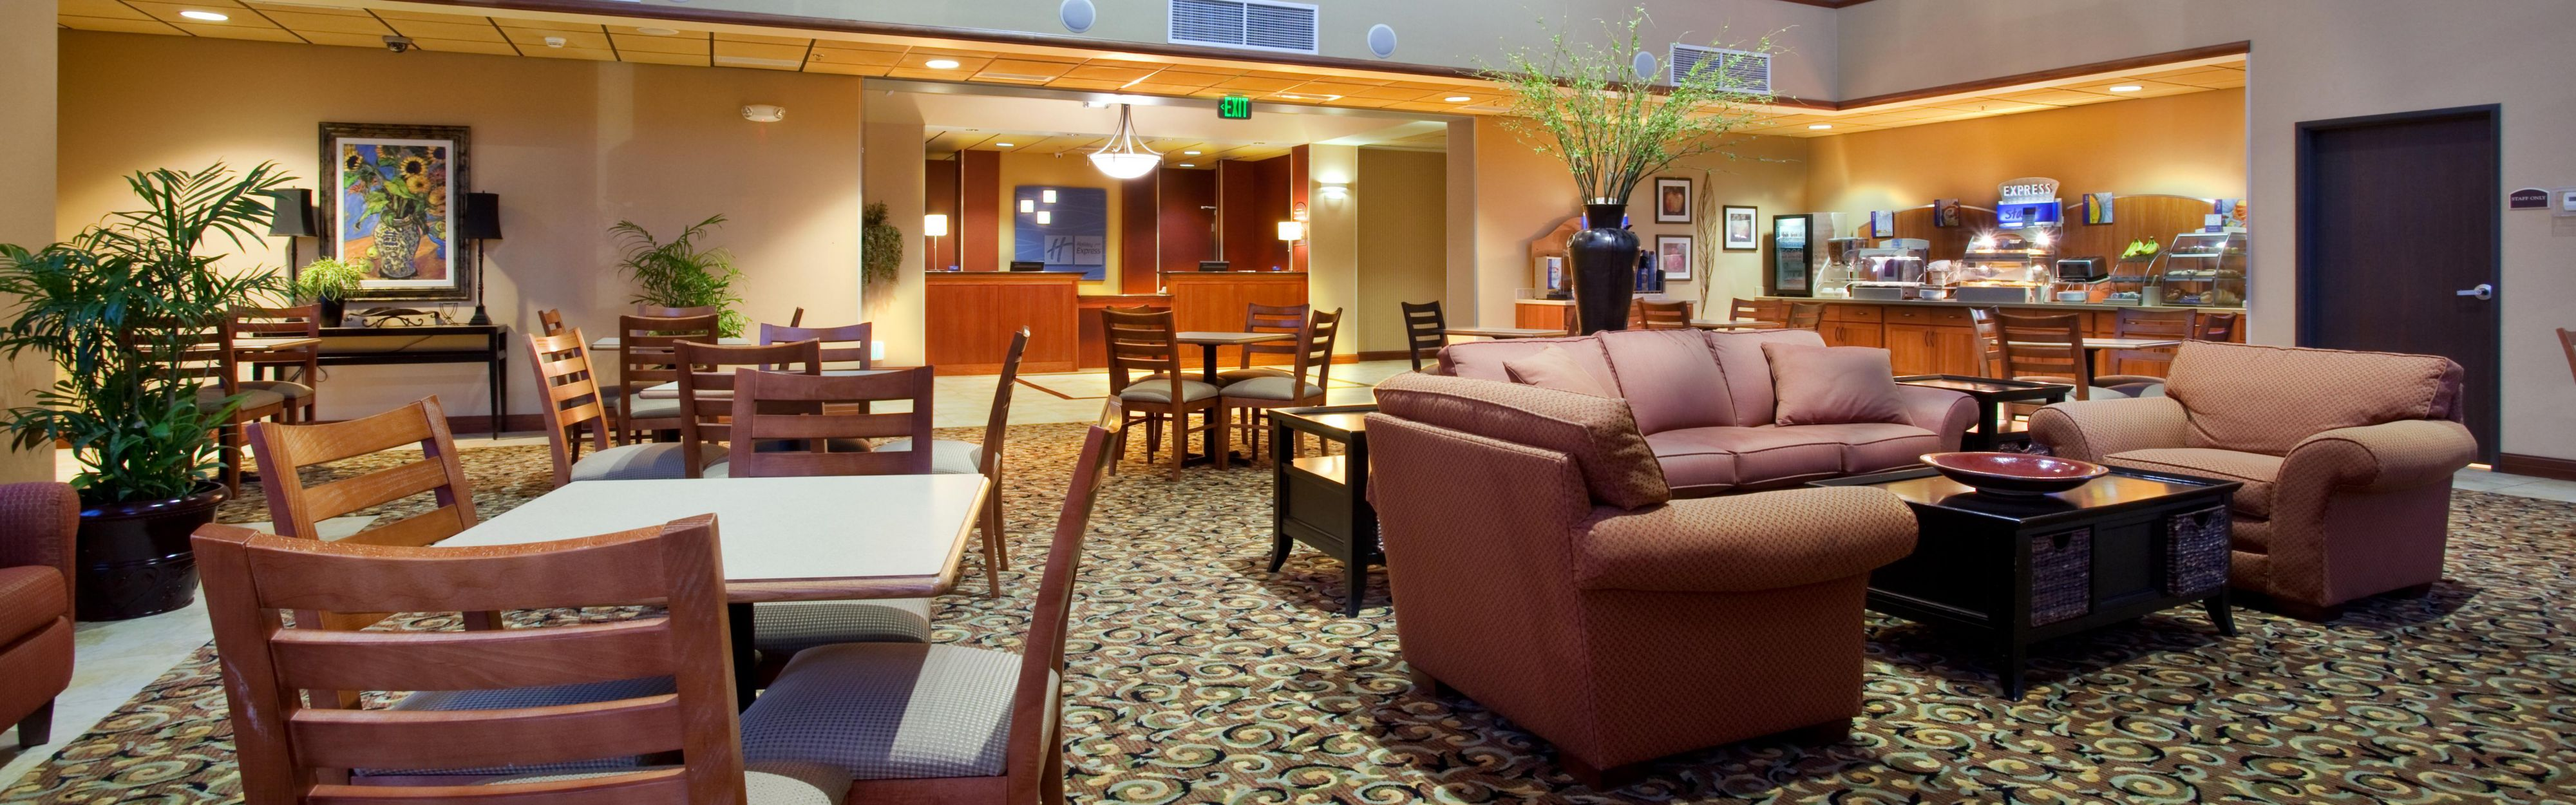 Holiday Inn Express & Suites Goodland image 3